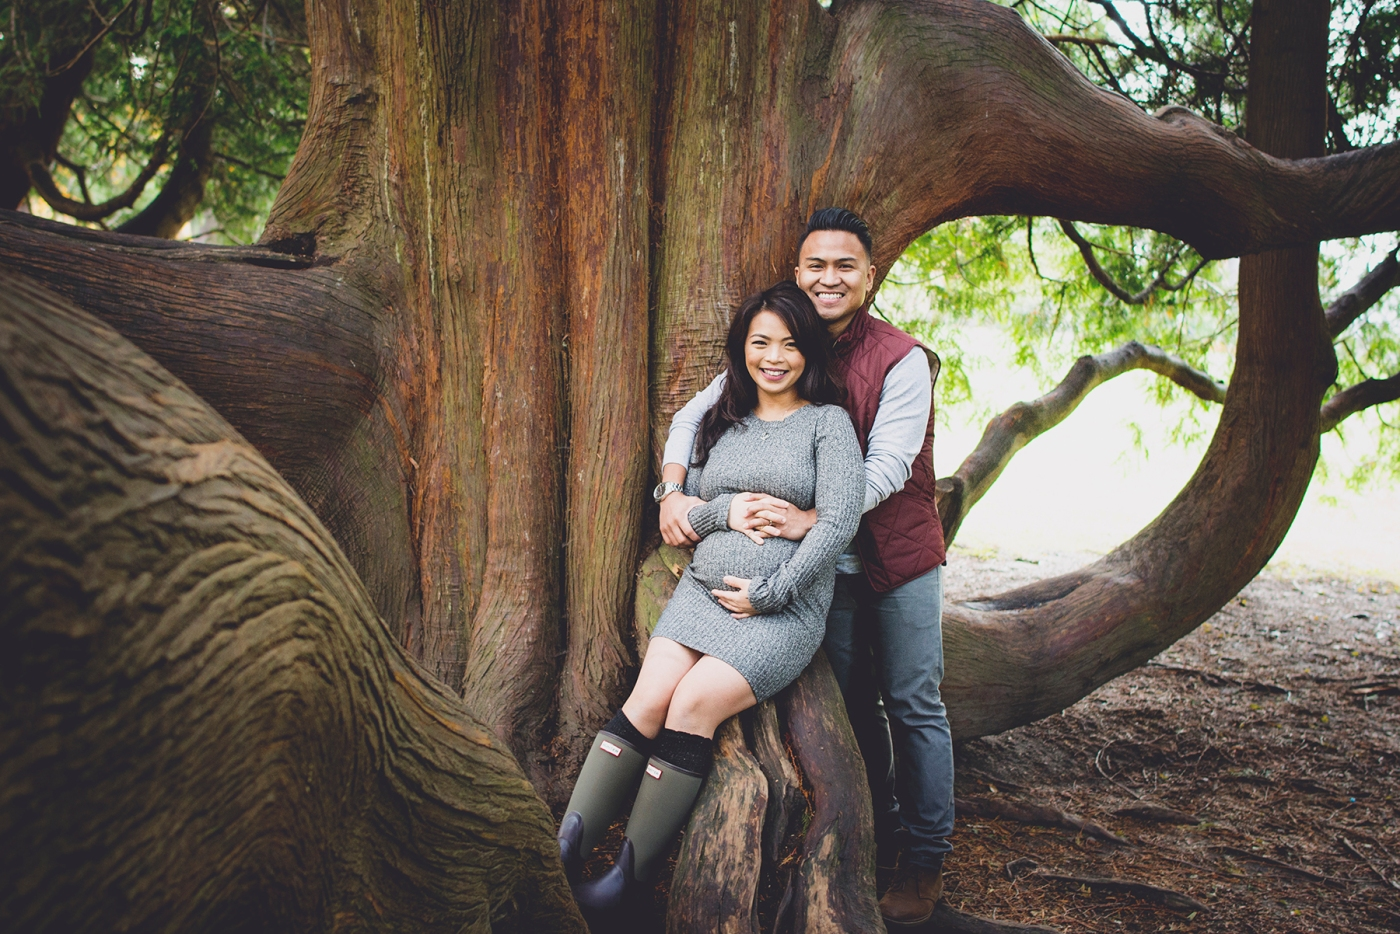 paula_p_maternity_the_royal_squirrel_seattle_family_photographer_2016_dsc_7955